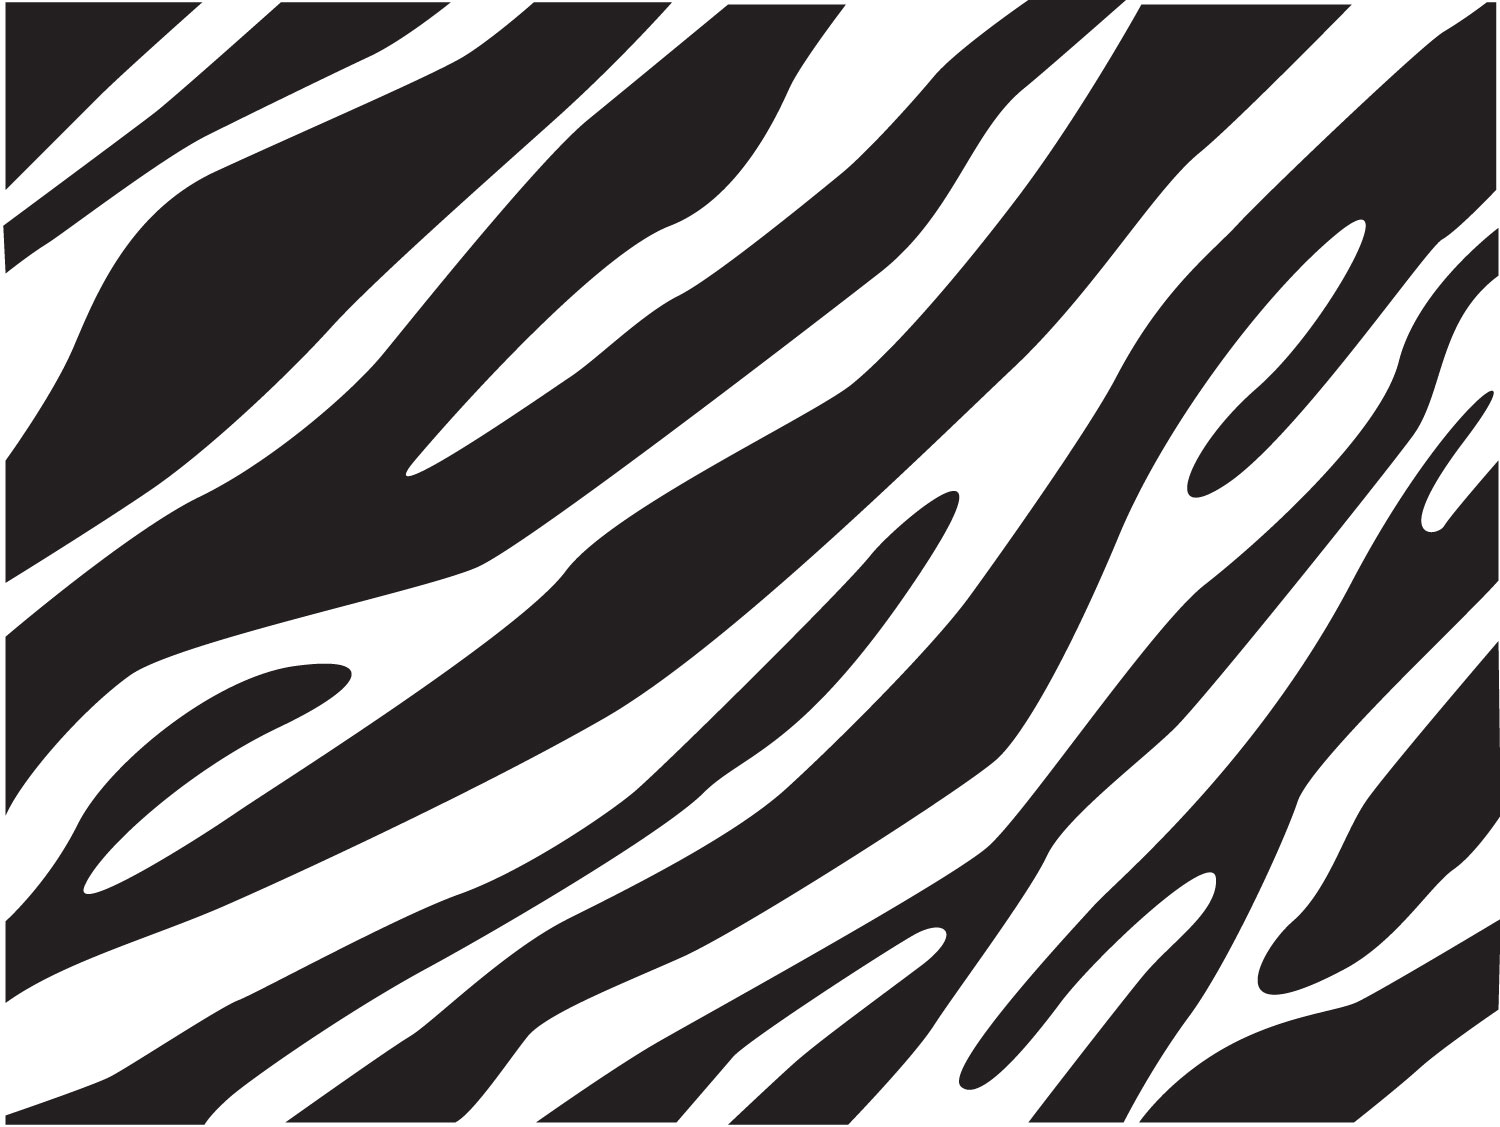 Zebra Print Wallpaper #6874554